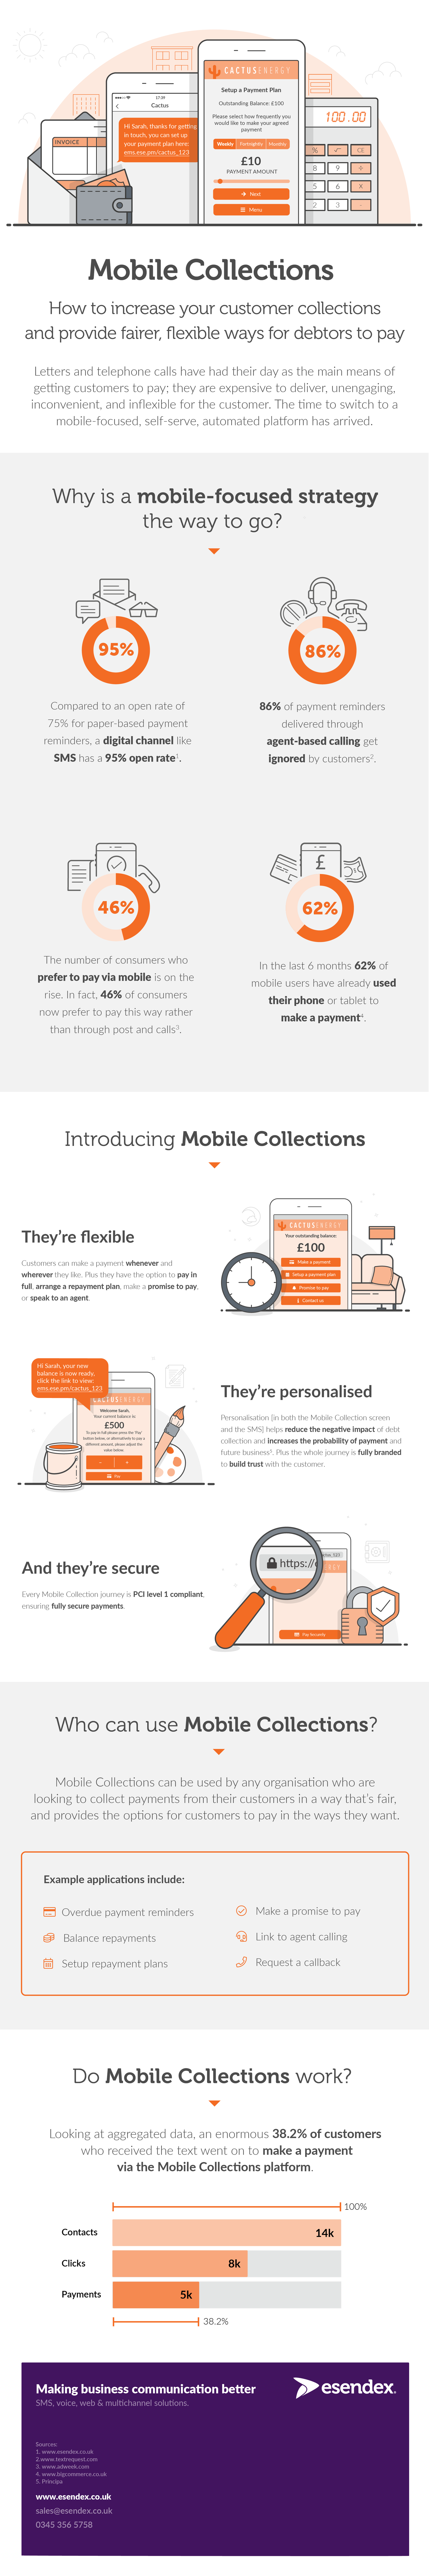 Infographic about digital mobile collections strategy